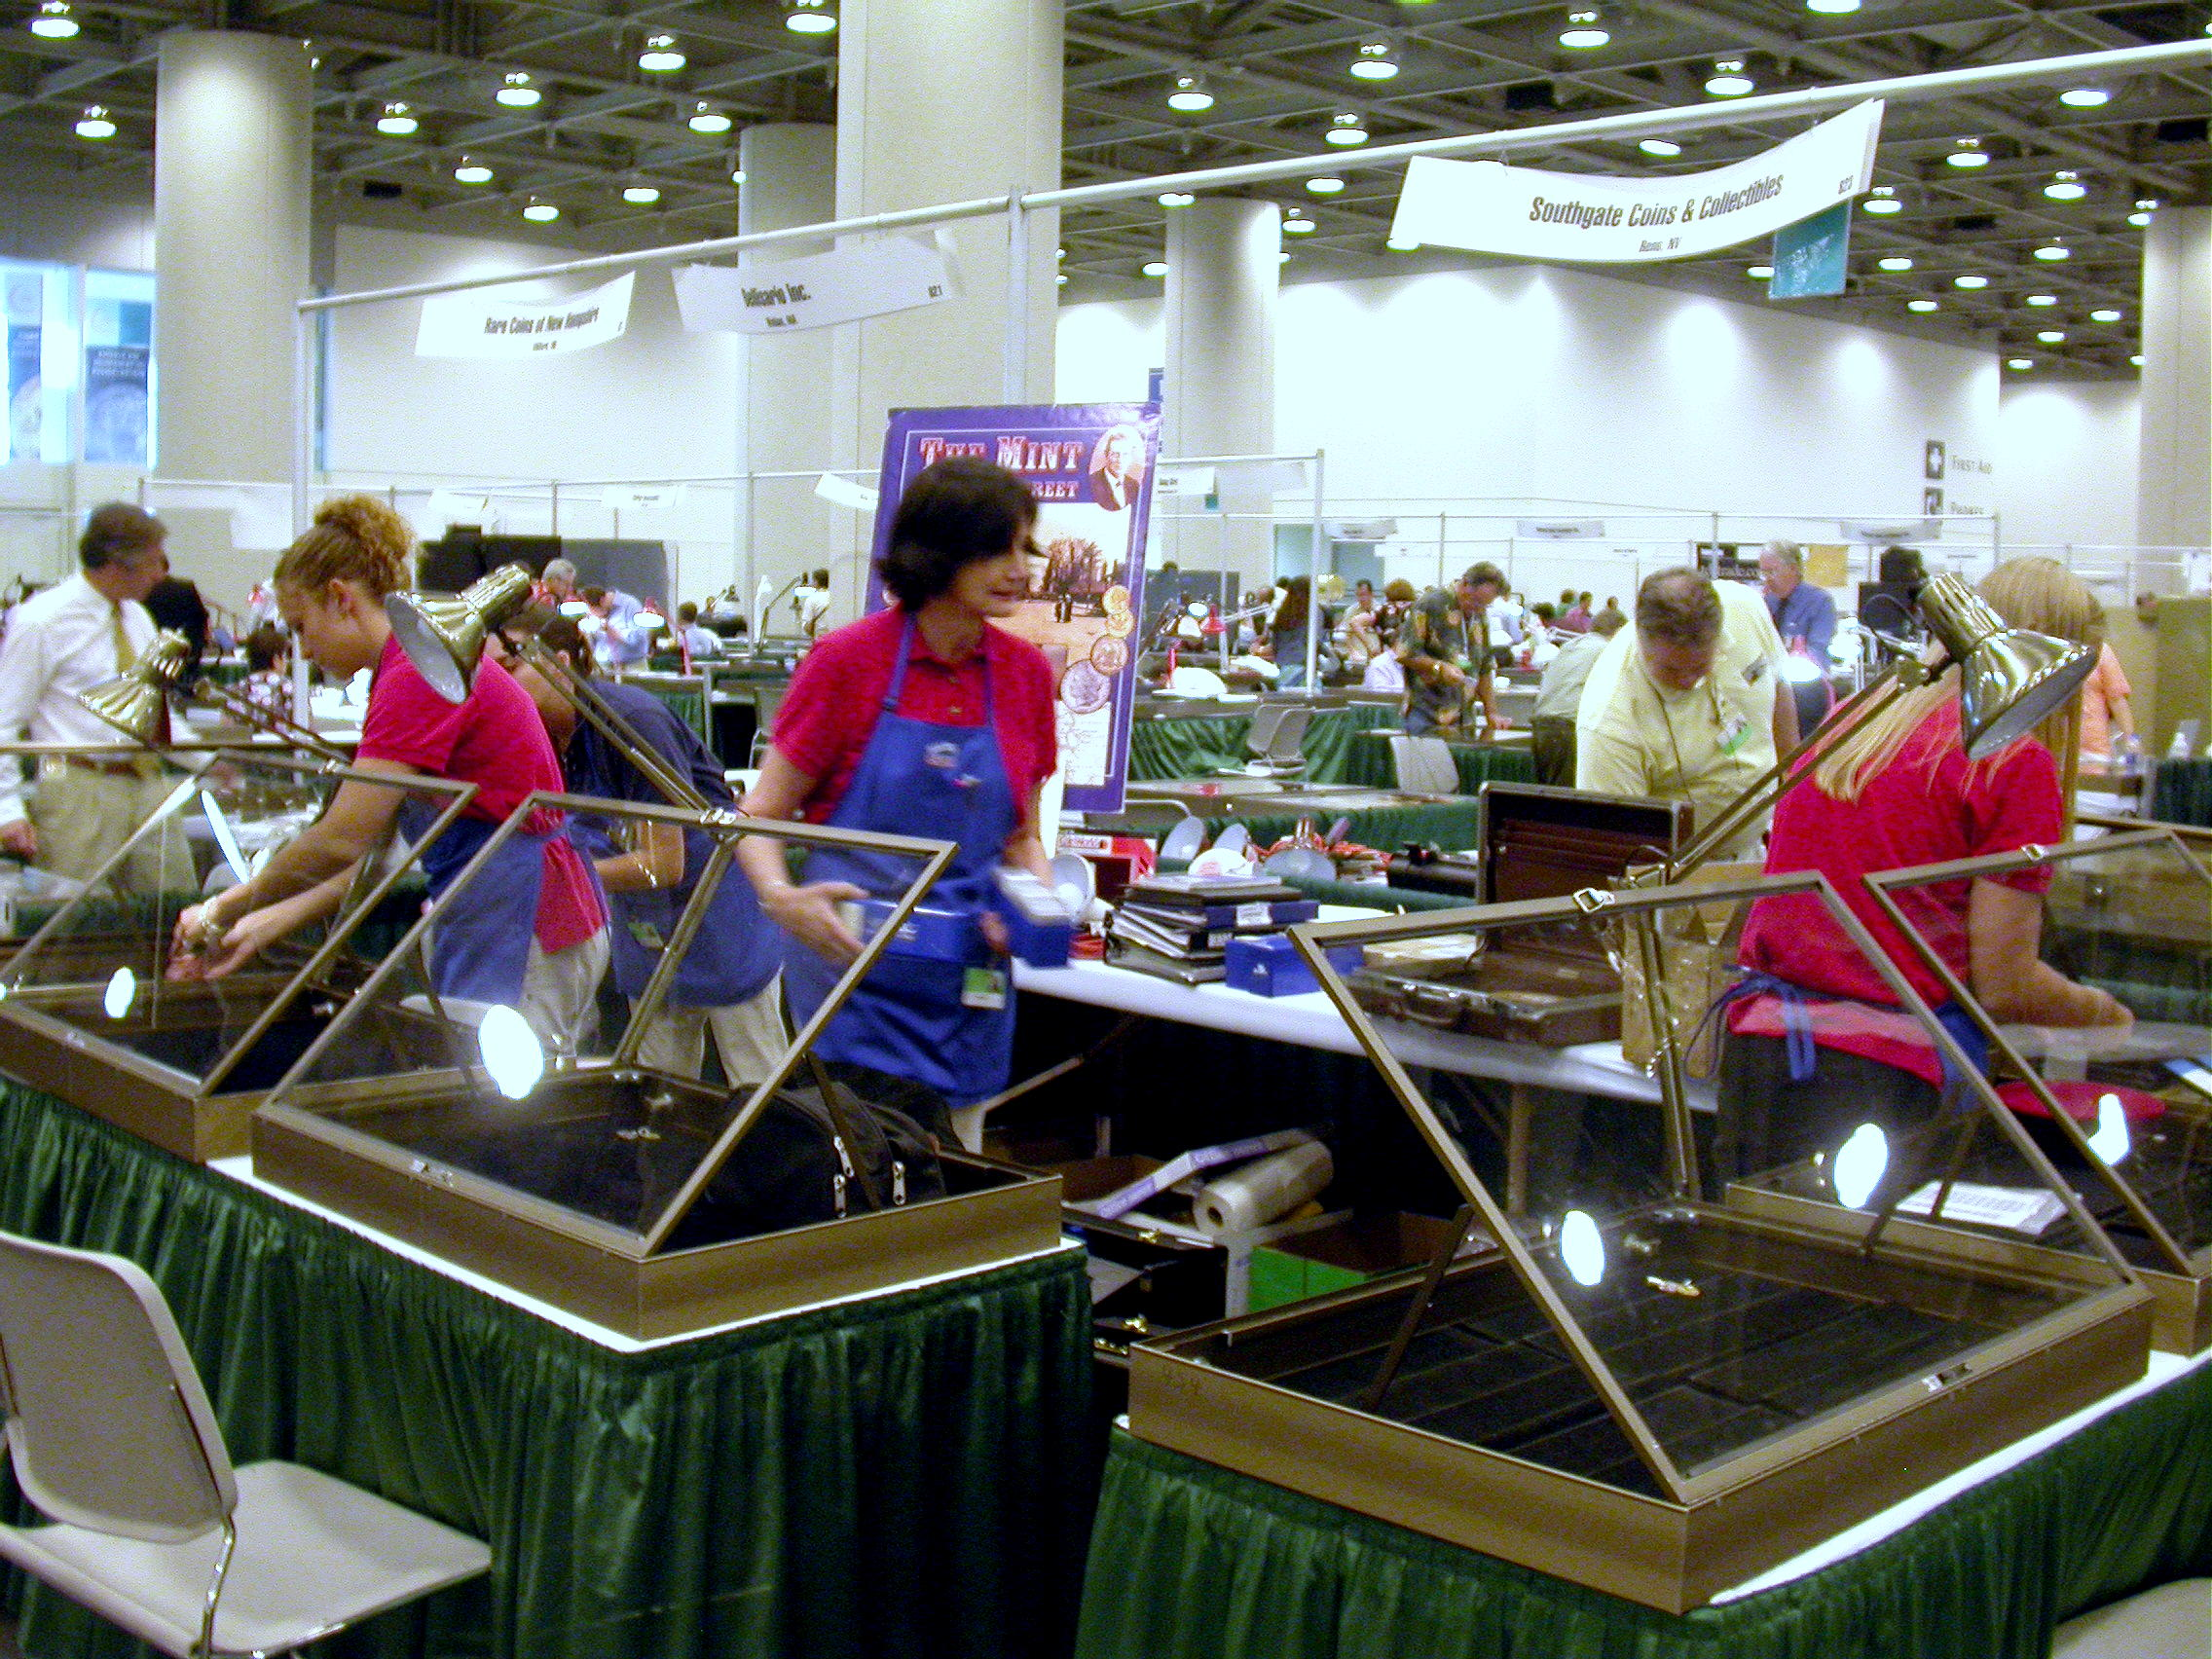 Southgate Coins owner Marie and her employees set up the booth at the 2005 Summer ANA